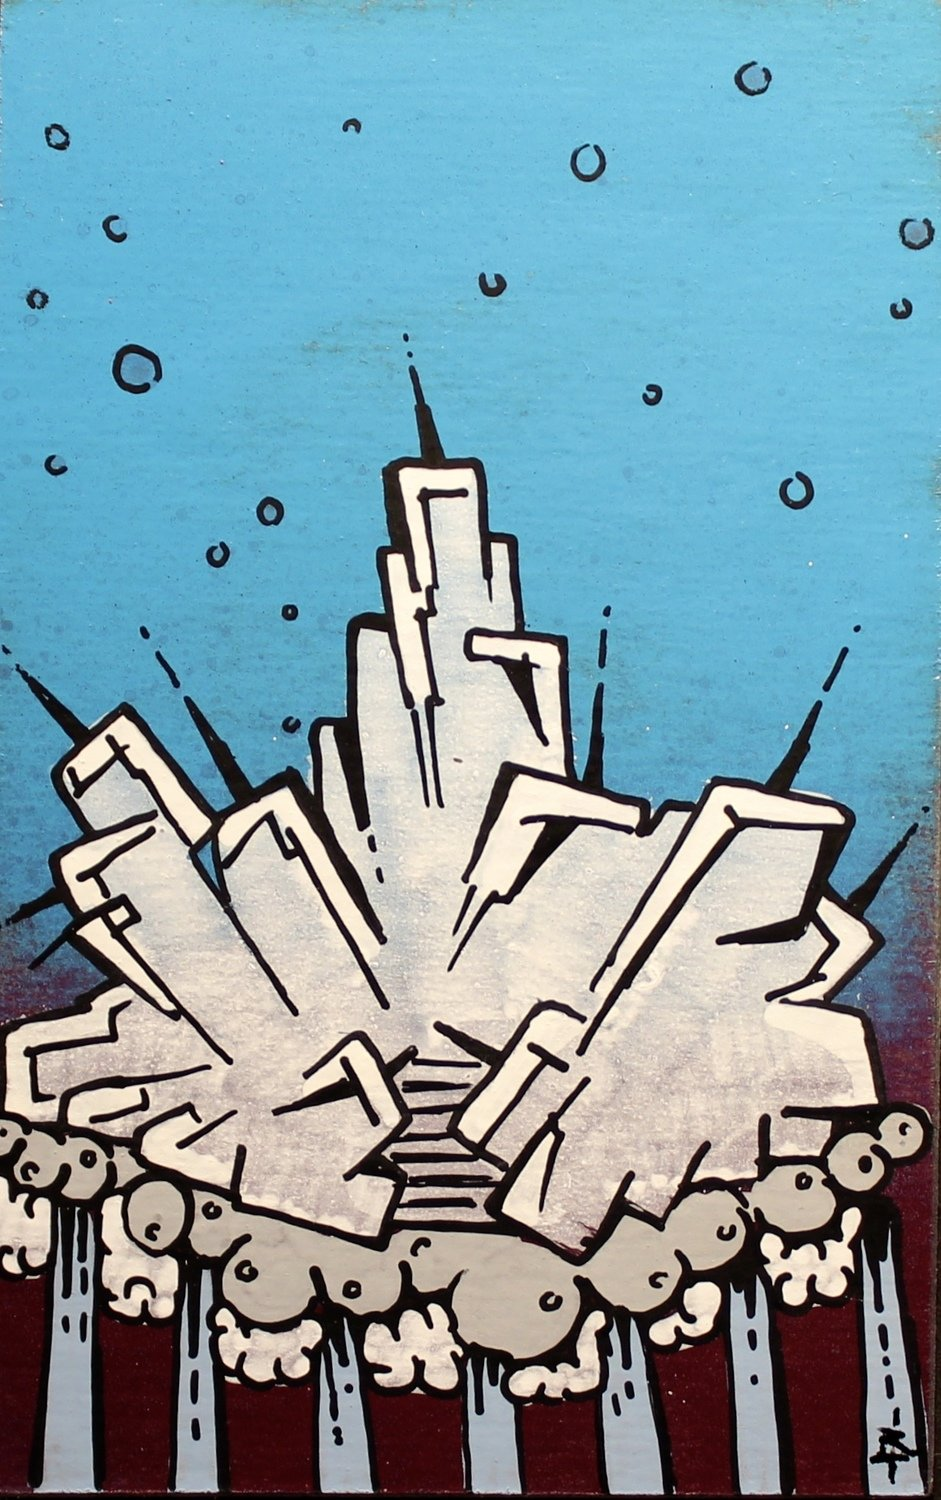 Blast off  8x10 spray paint and marker on paper